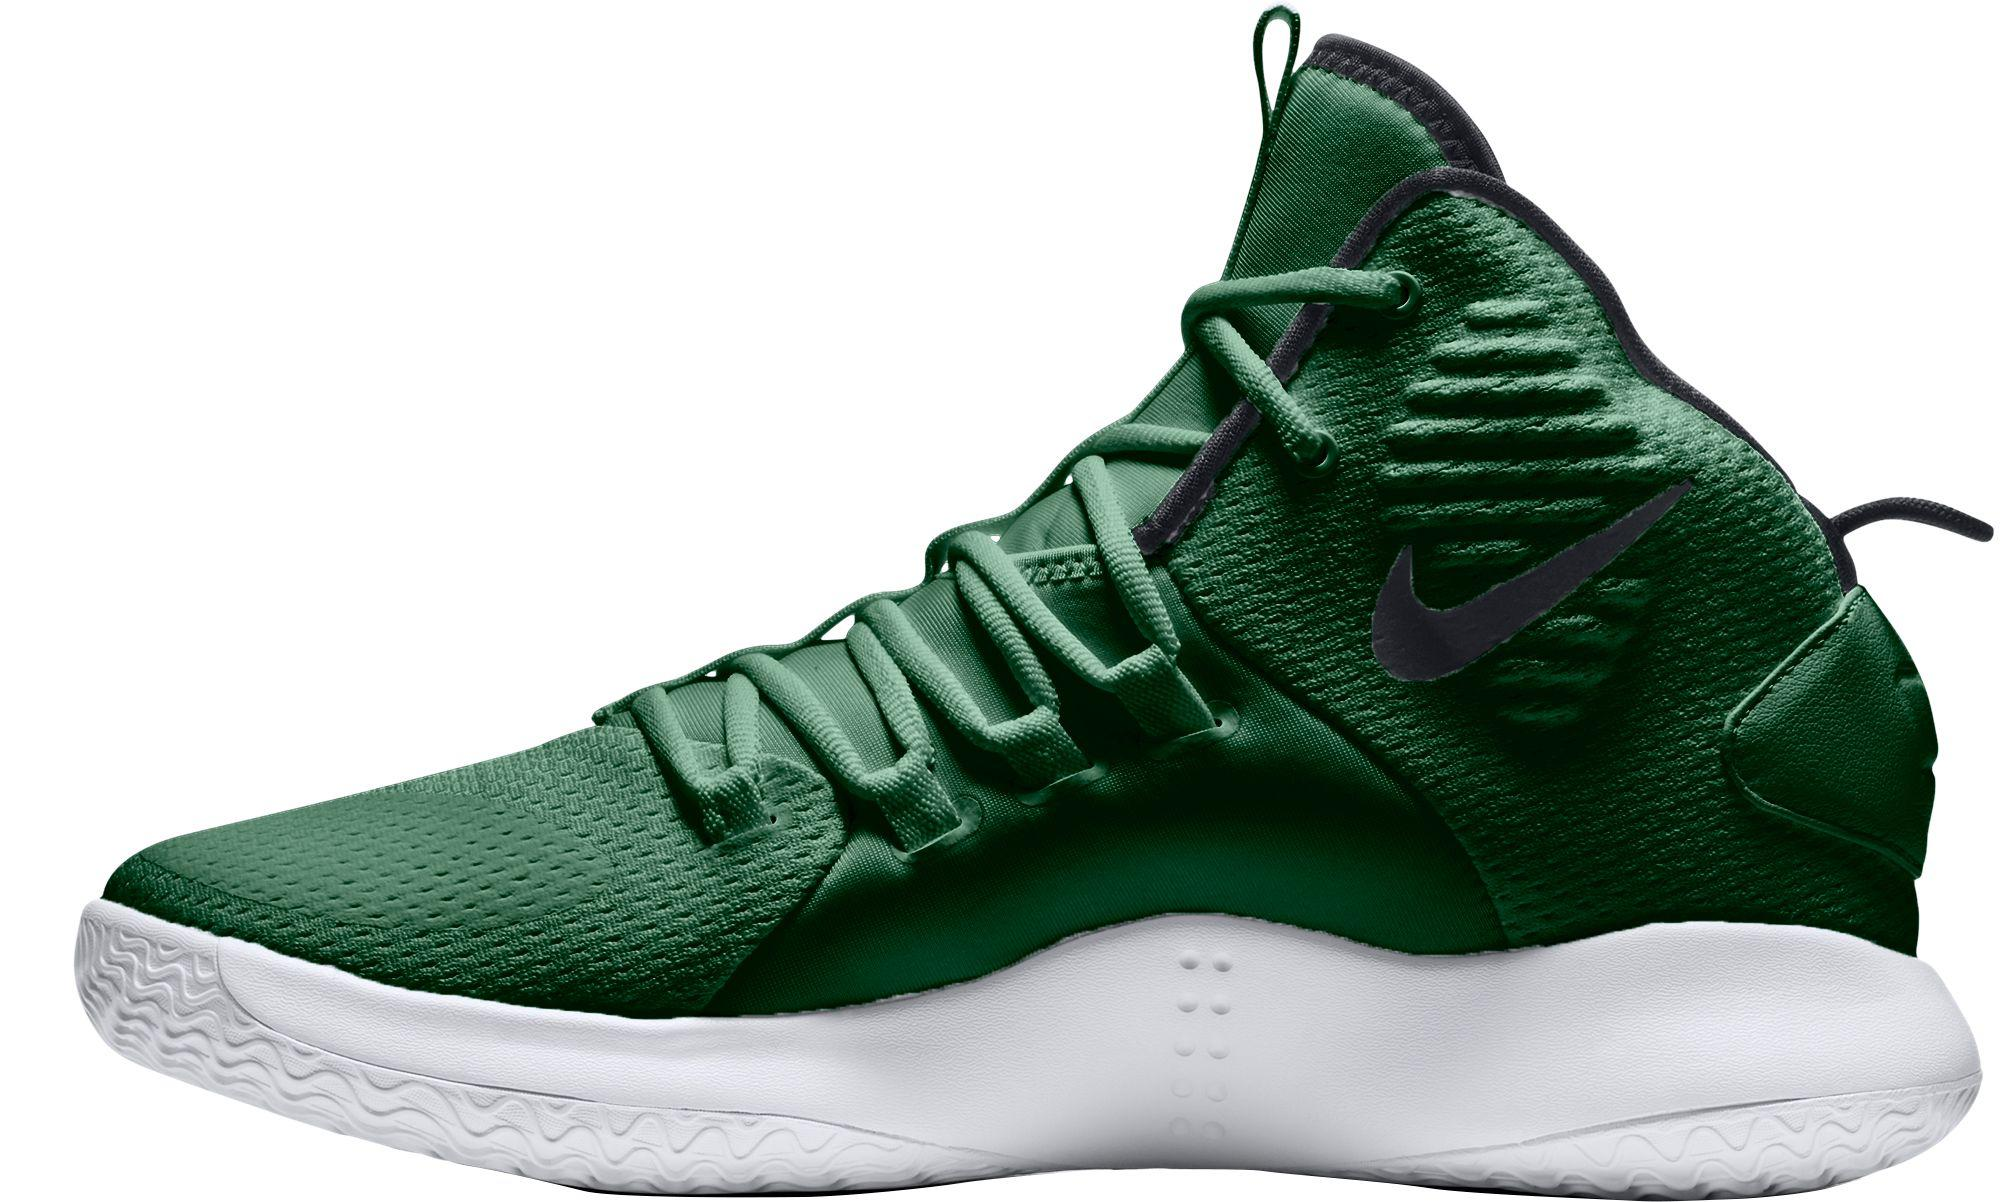 f46bc192e0ab Lyst - Nike Hyperdunk X Mid Tb Basketball Shoes in Green for Men